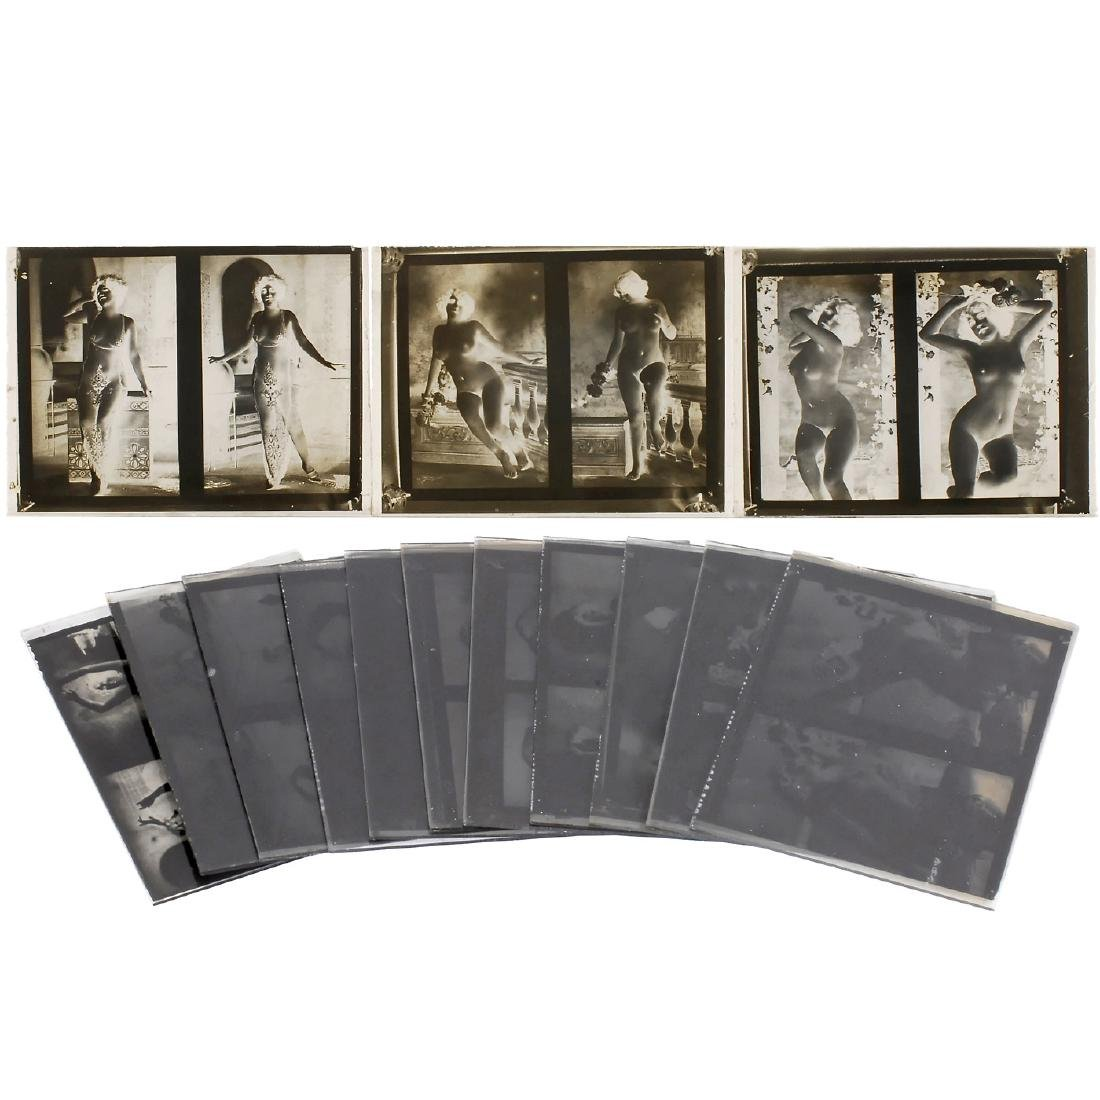 Glass Plates Negatives of Nudes, c. 1900